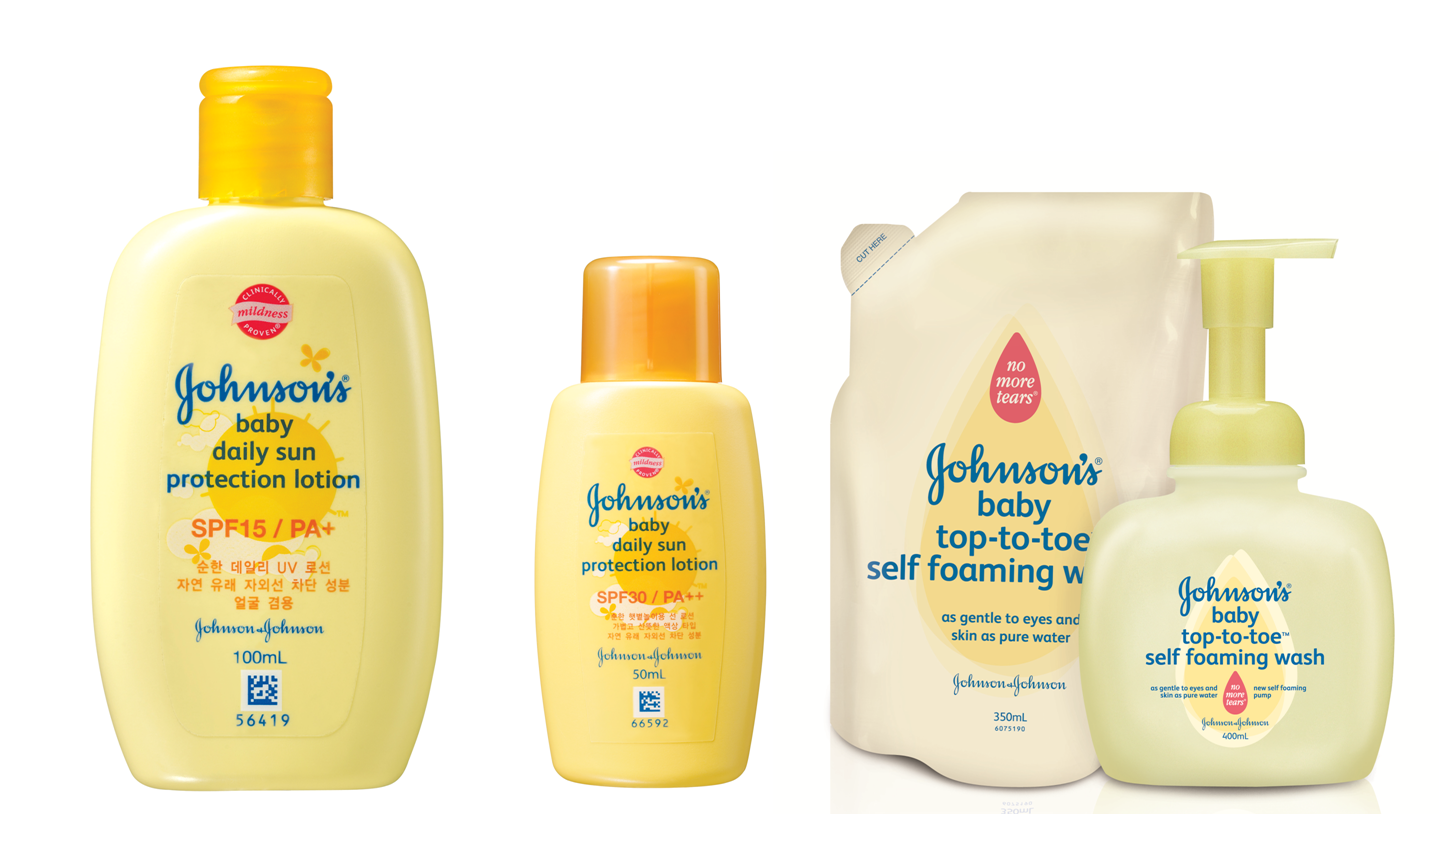 Gastronomy By Joy Are You A New Gen Mom Asked Johnson And Baby Top To Toe Wash 200ml I Grew Up With Johnsons Products So Did My Kids Never It Fail Me In Securing Safe Healthy Skin For Whole Family Even